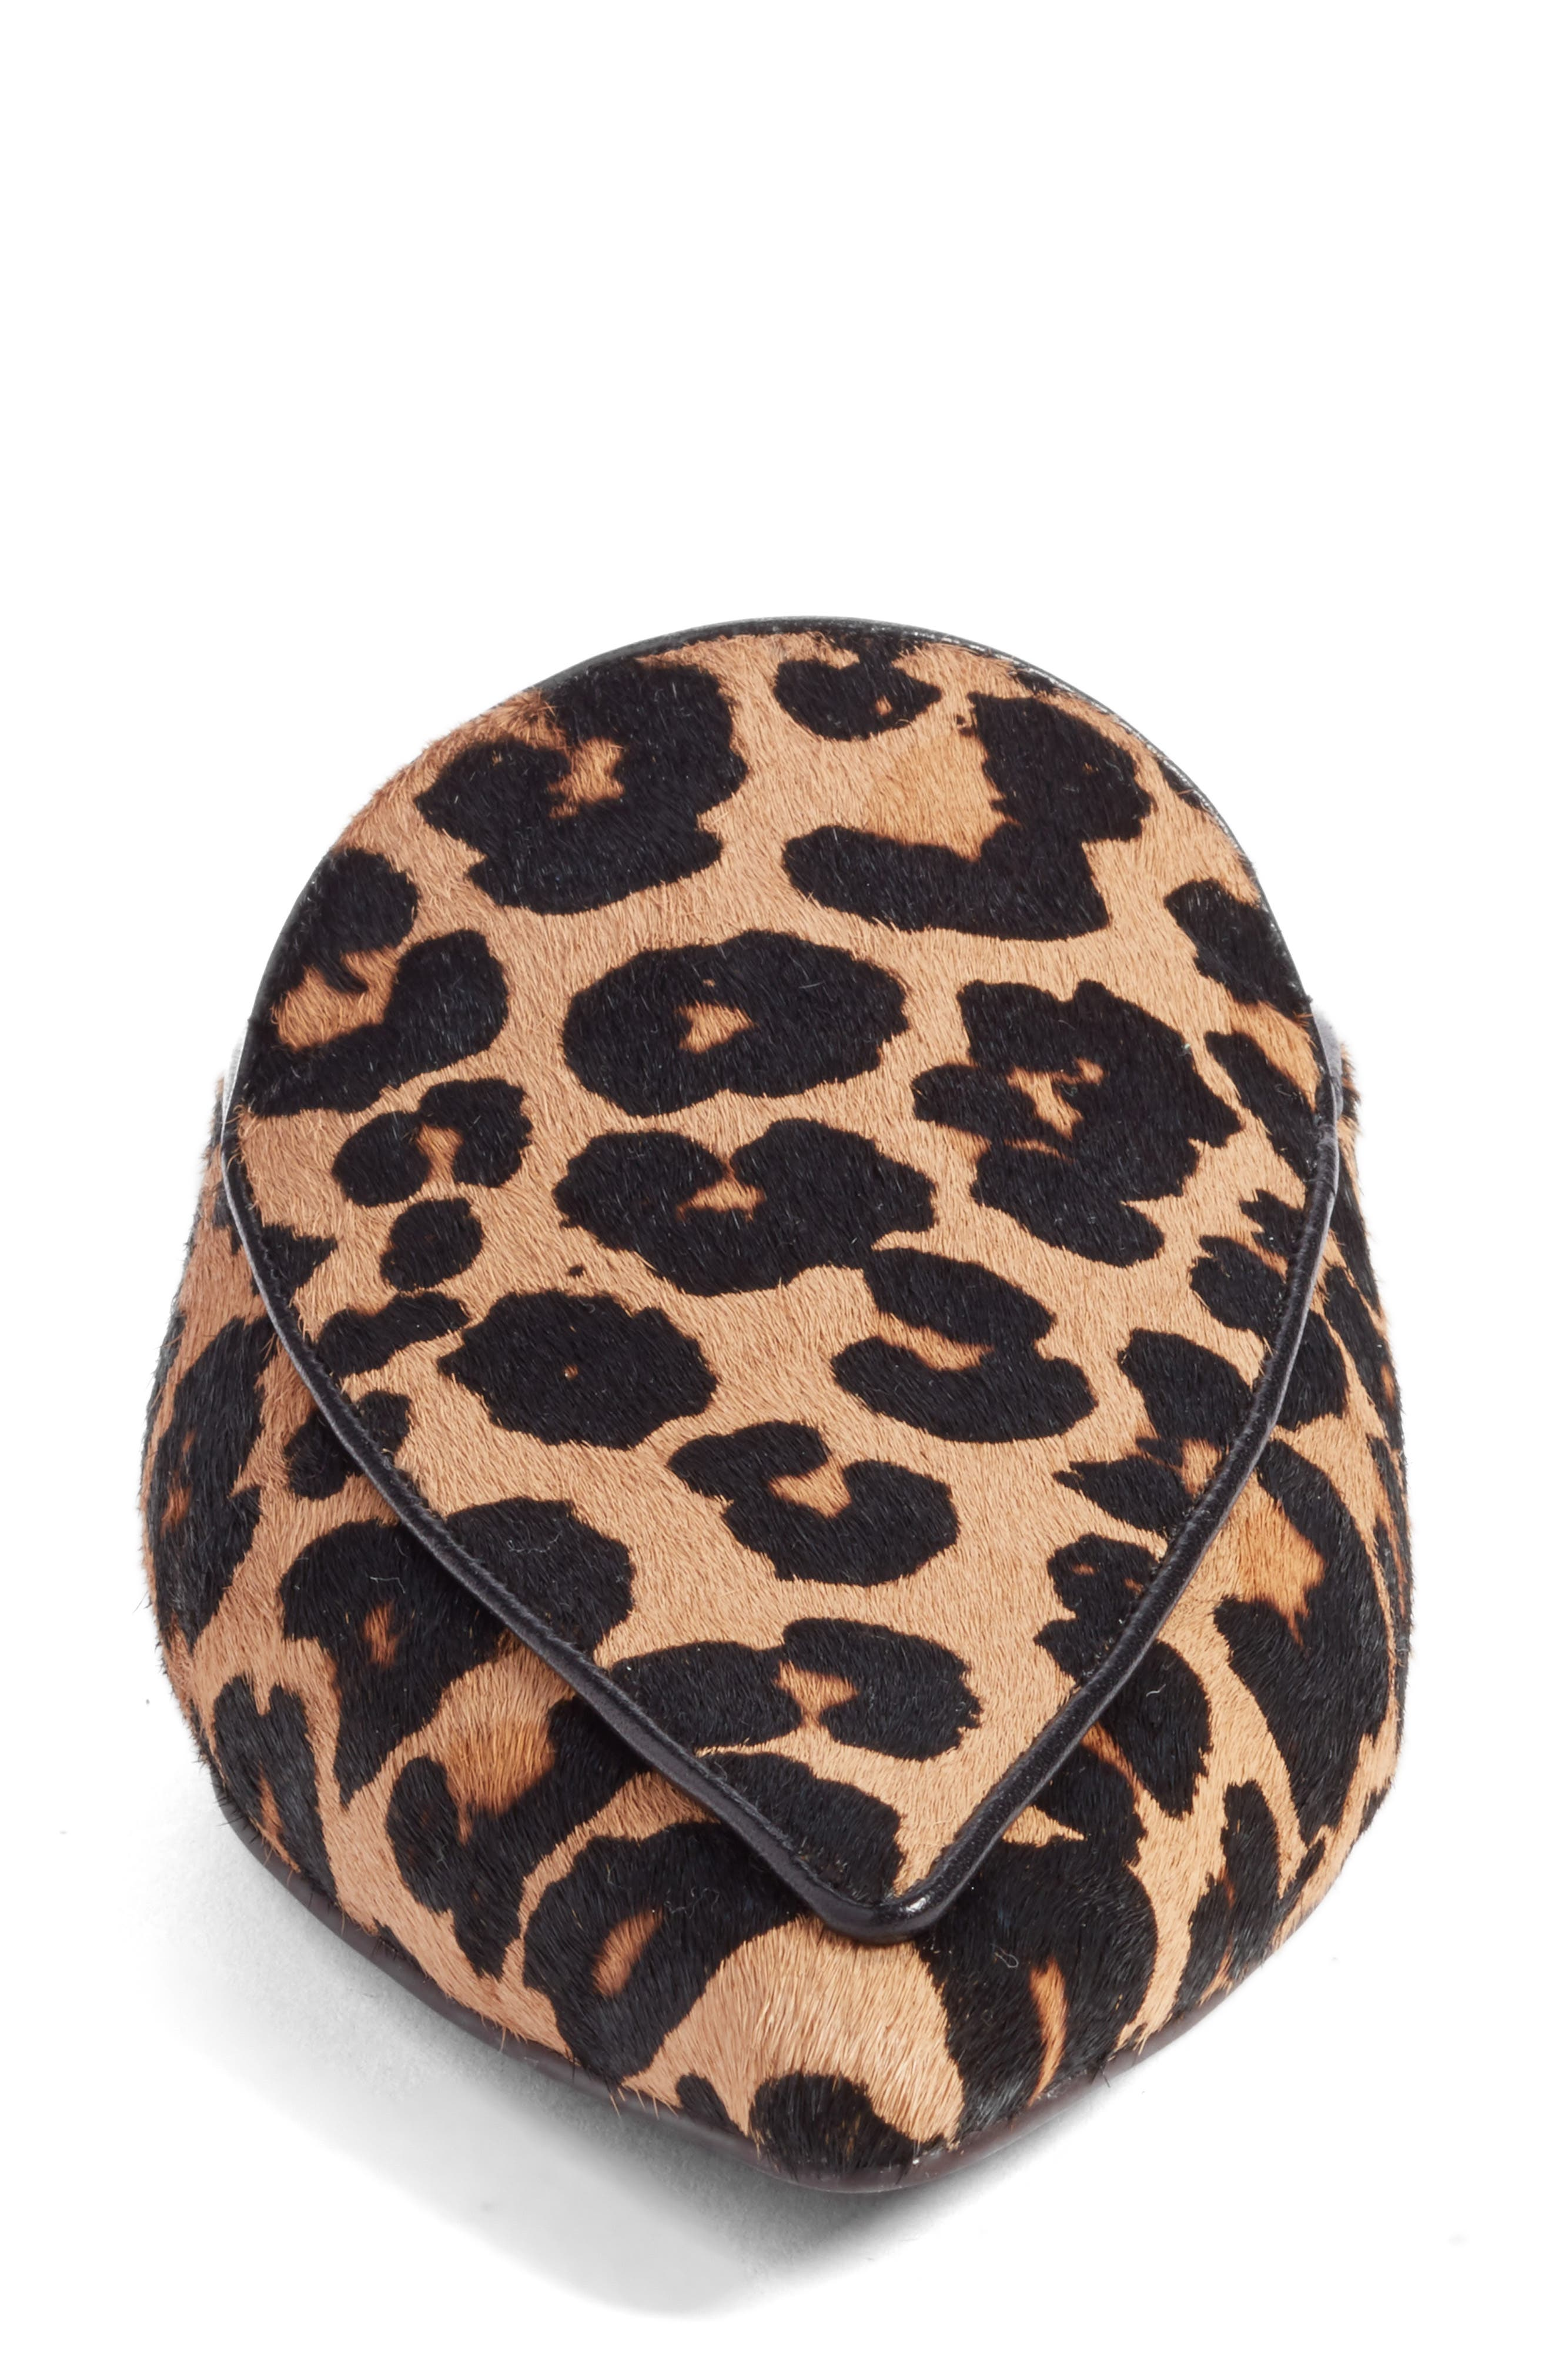 Piper Loafer Mule,                             Alternate thumbnail 4, color,                             Ocelot Print Calf Hair